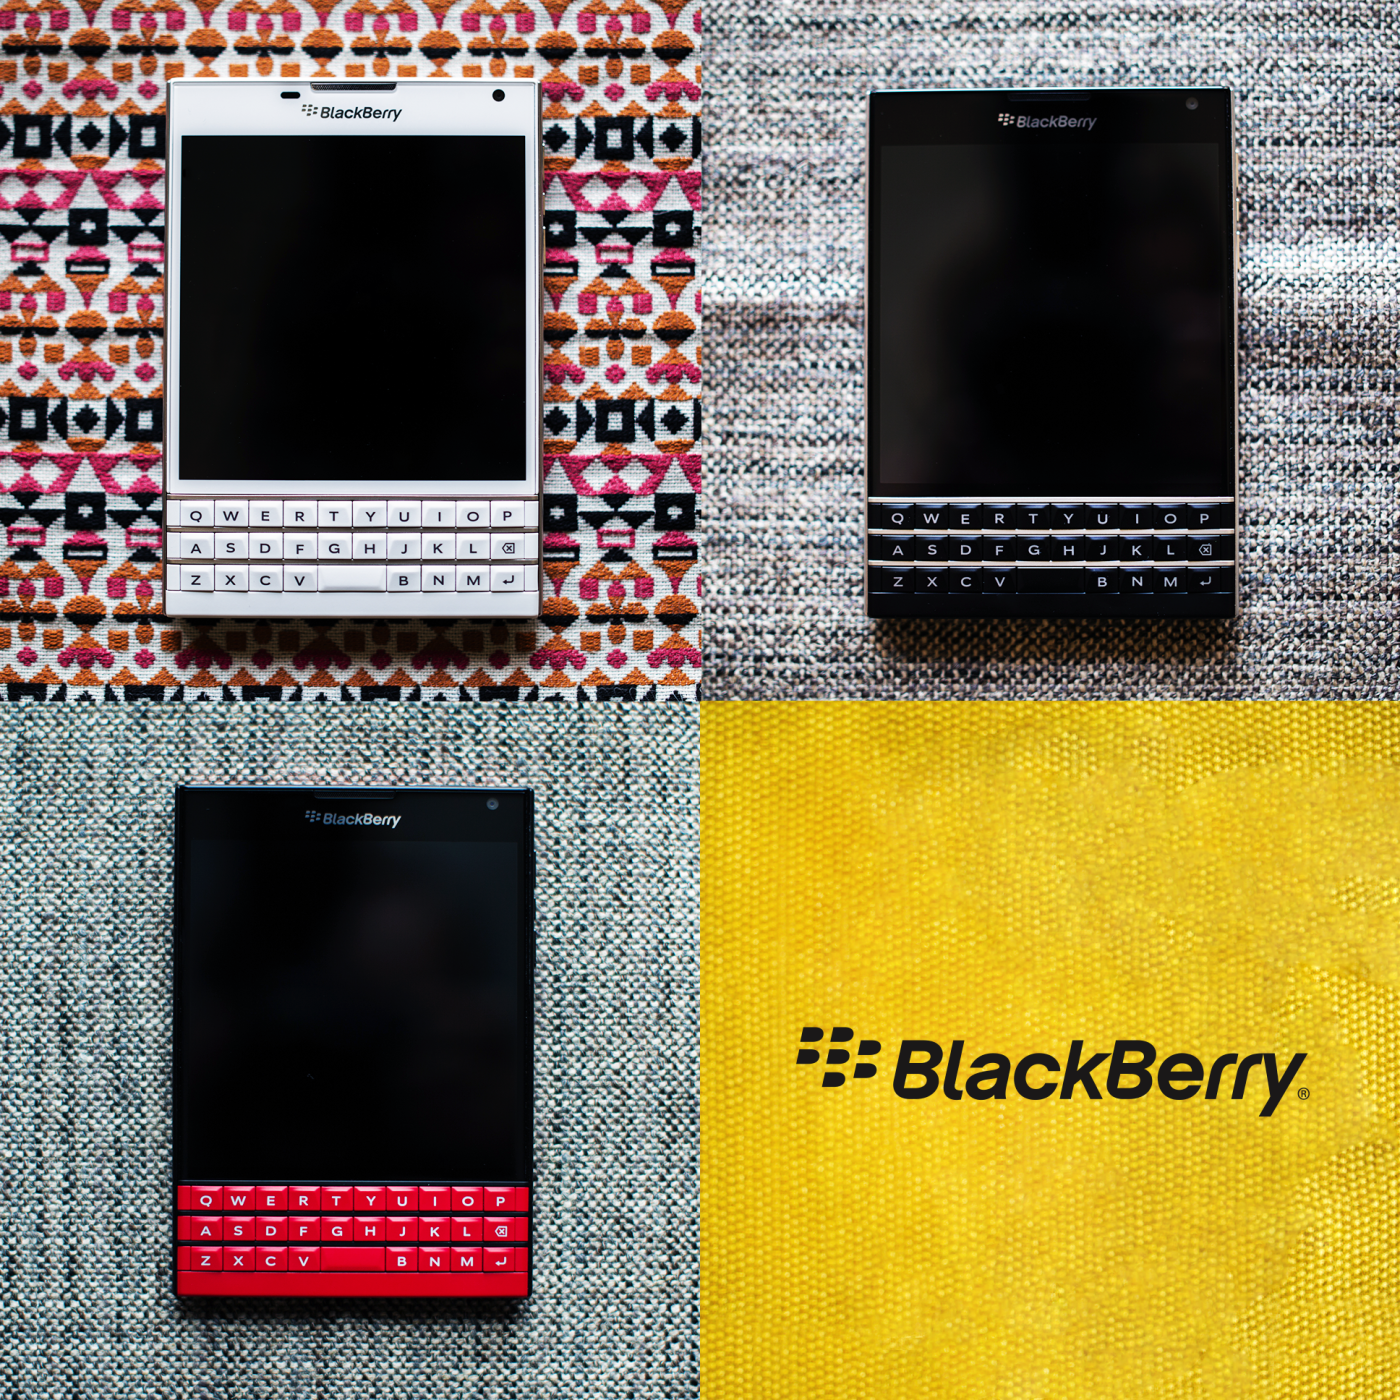 Blackberry Offering Special Pricing On Select Devices For